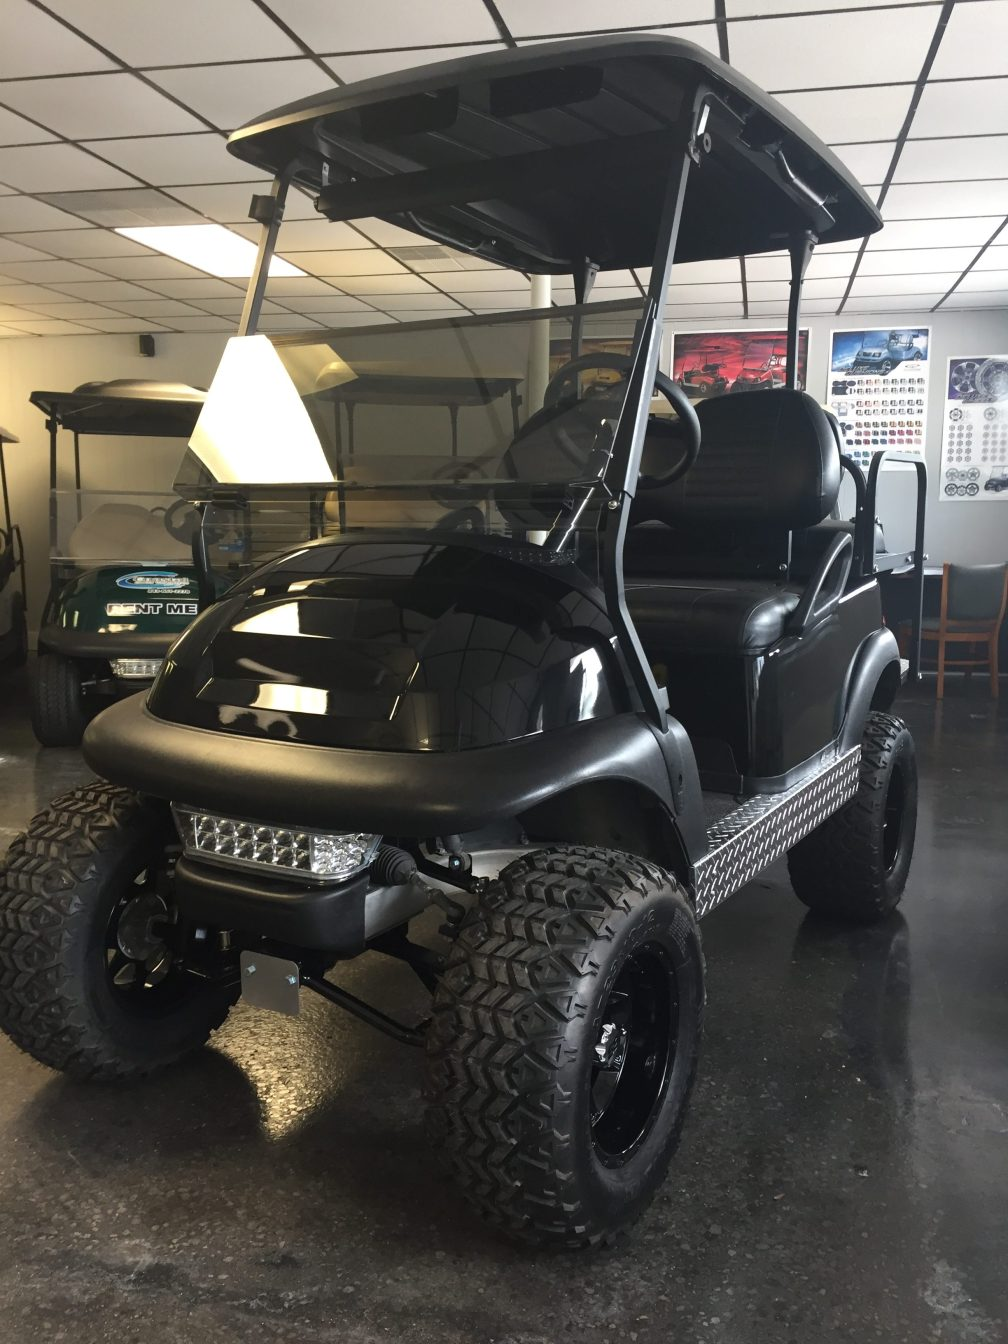 Coastal Carts Unlimited- Club Car